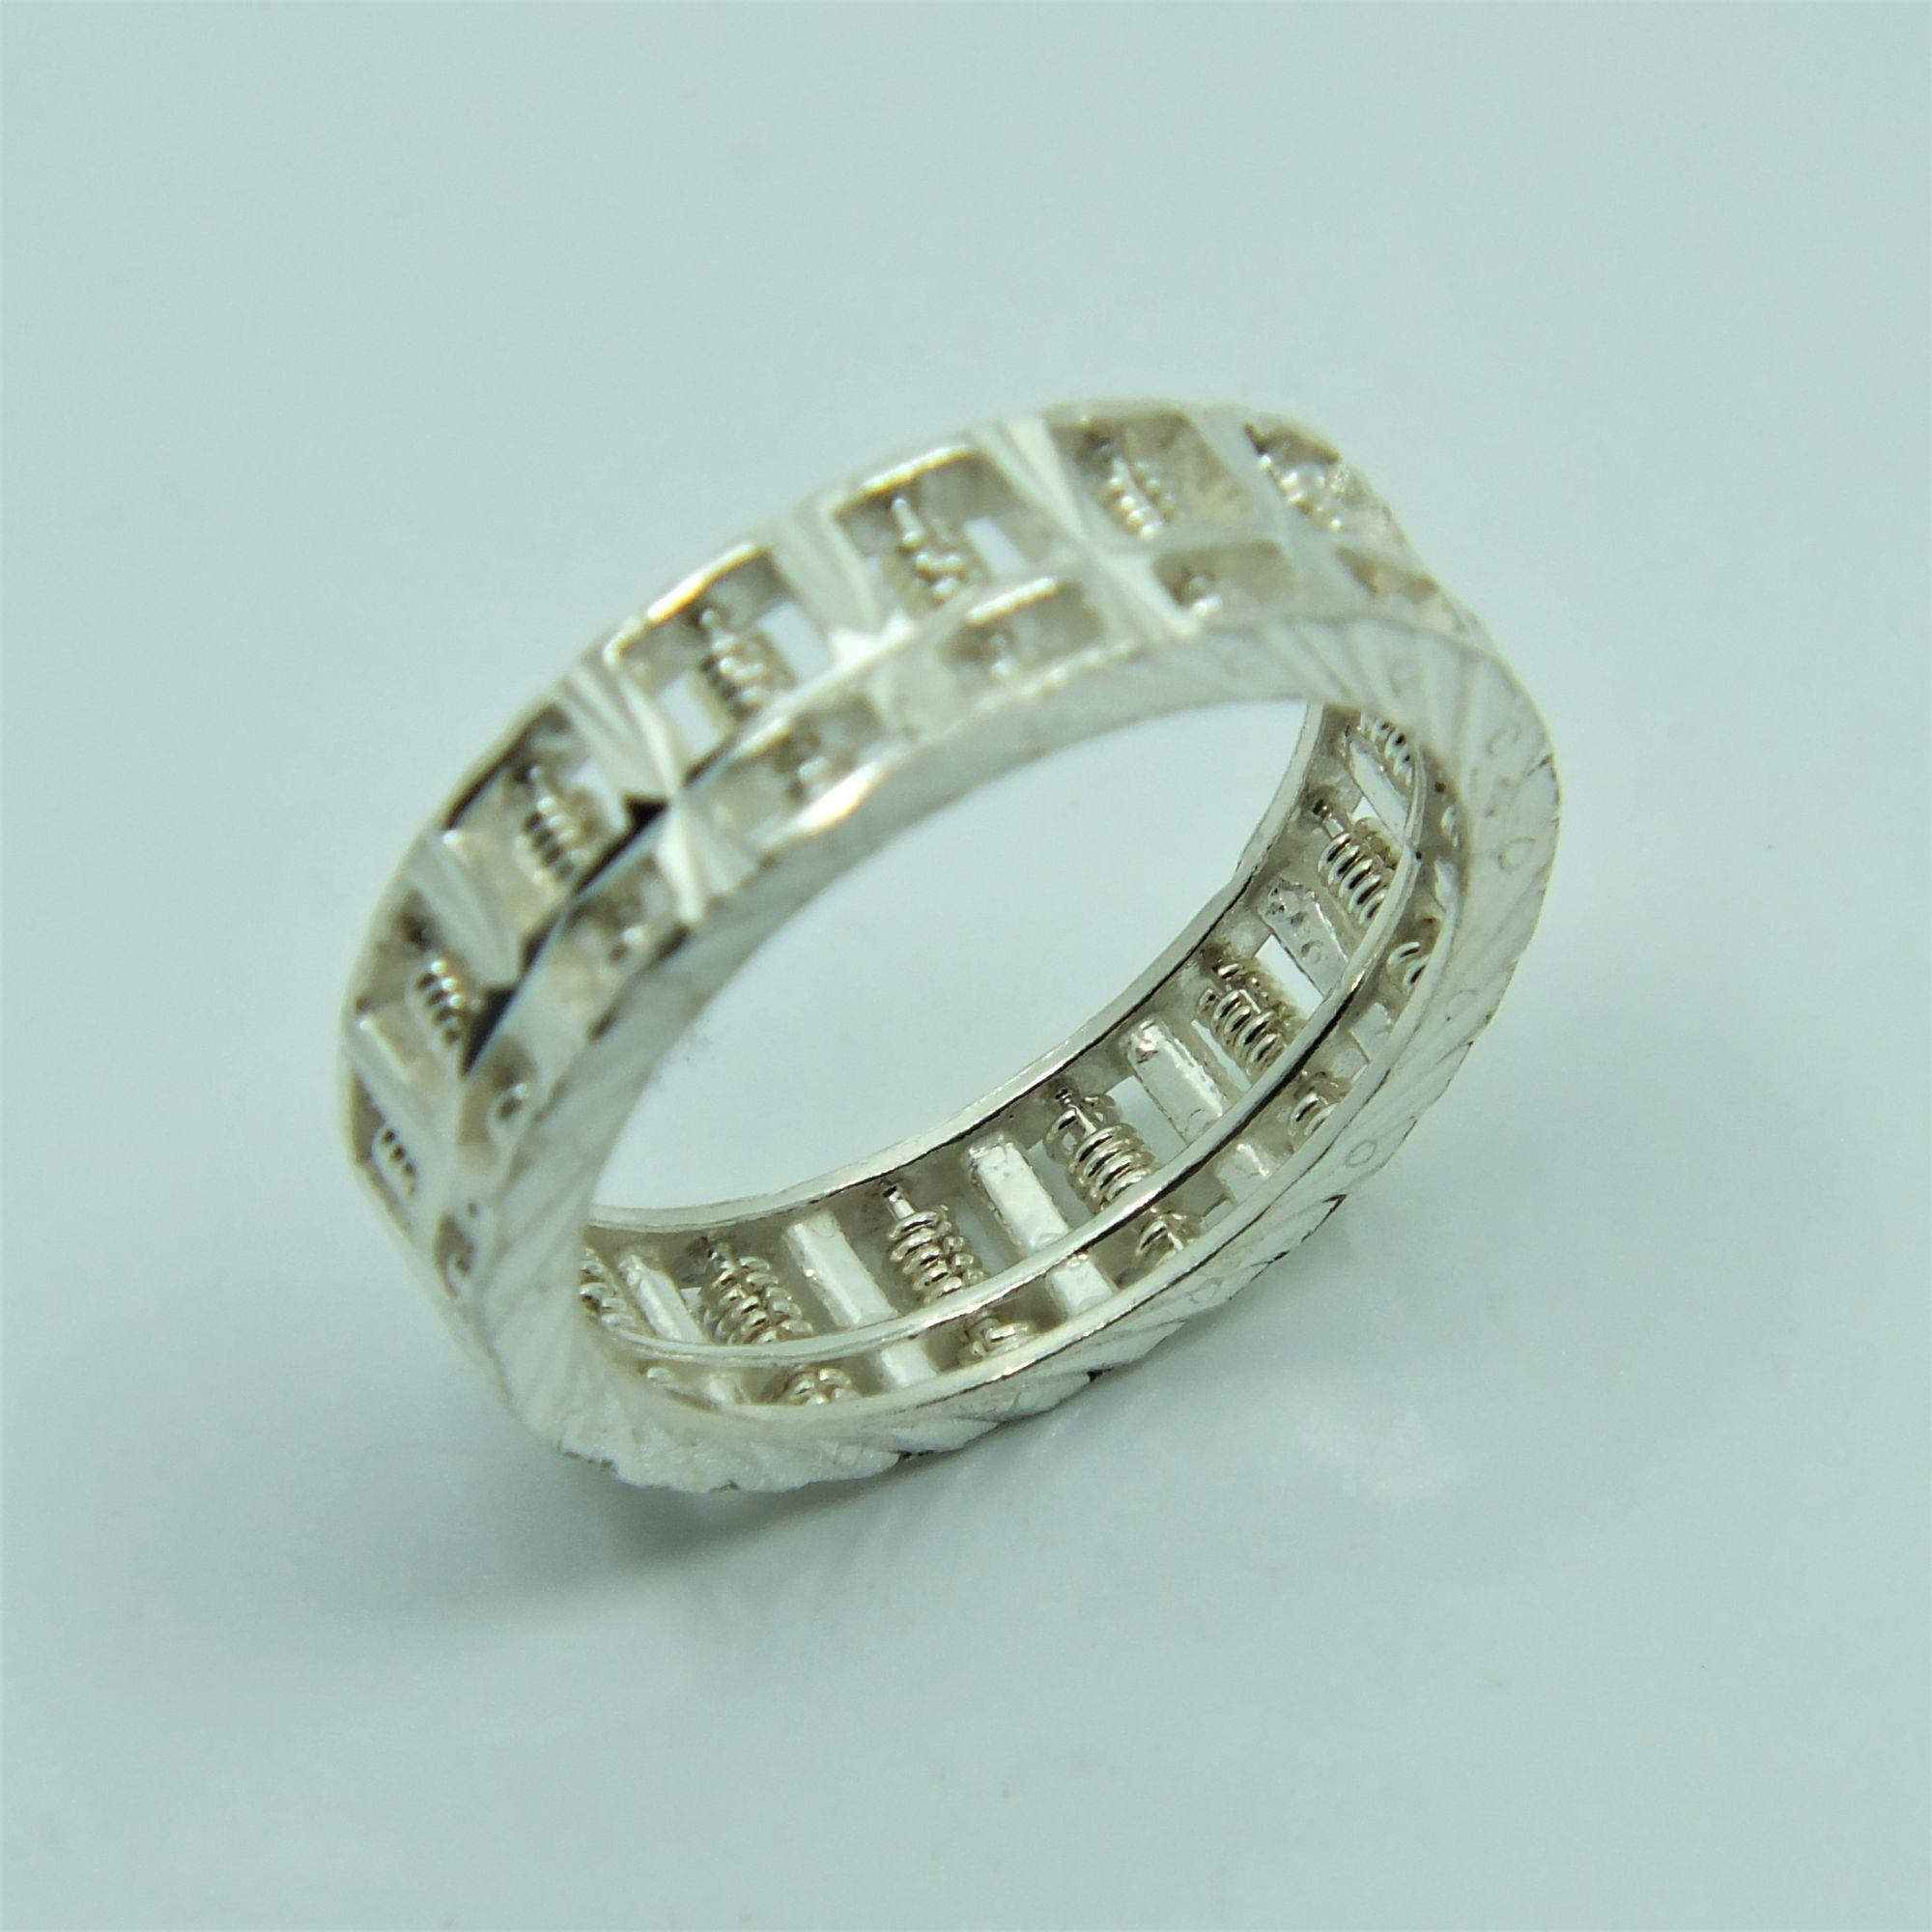 Purchase Silver 1314 925 Pure Silver Abacus Ring 925纯银算盘戒指 Online